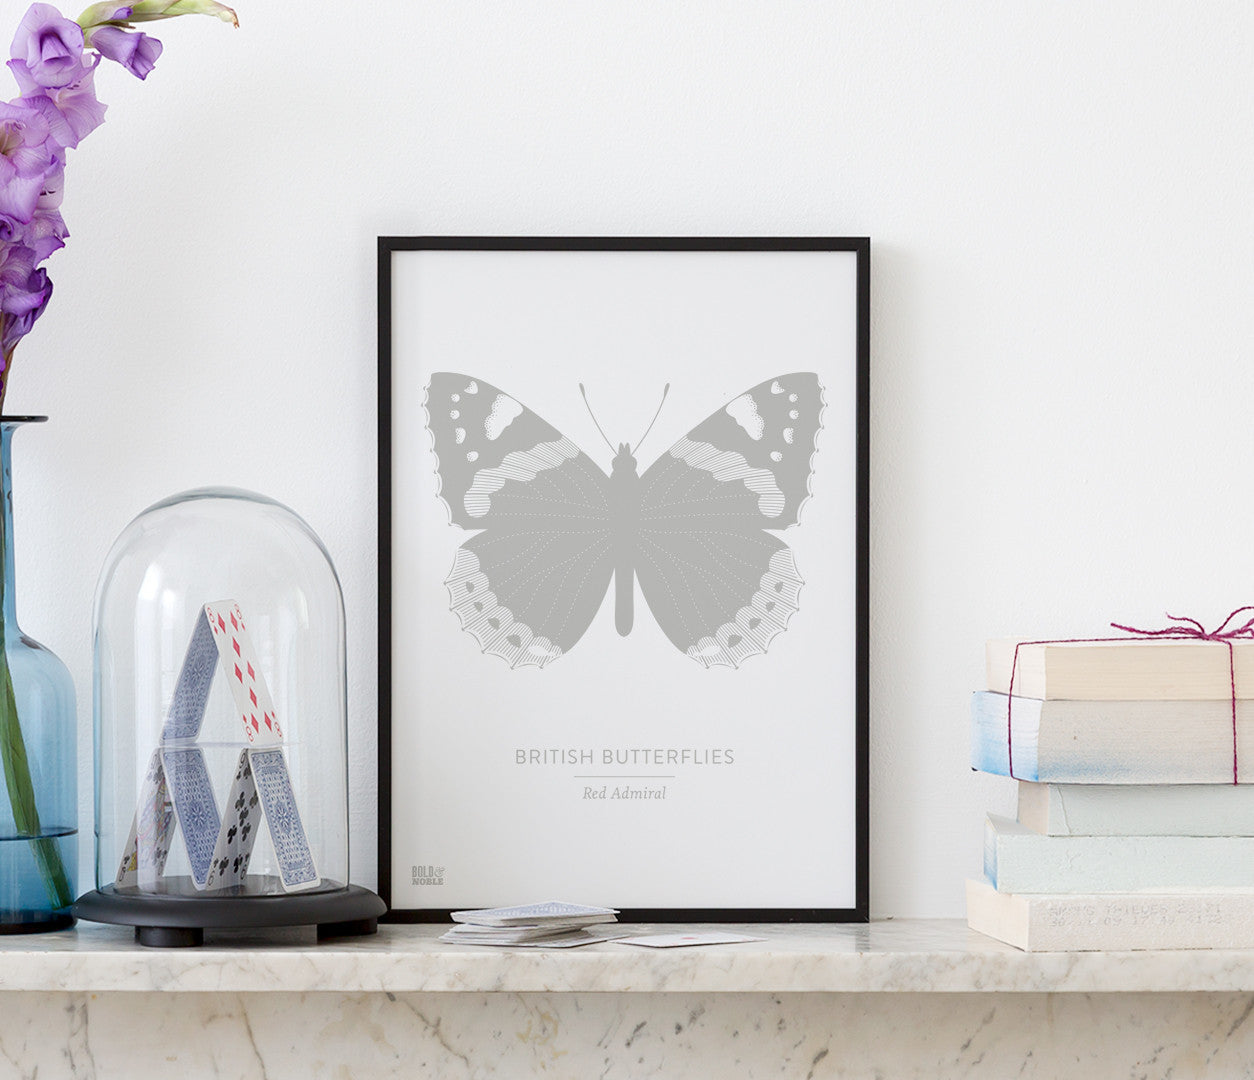 British Butterflies 'Red Admiral' Print in Putty Grey